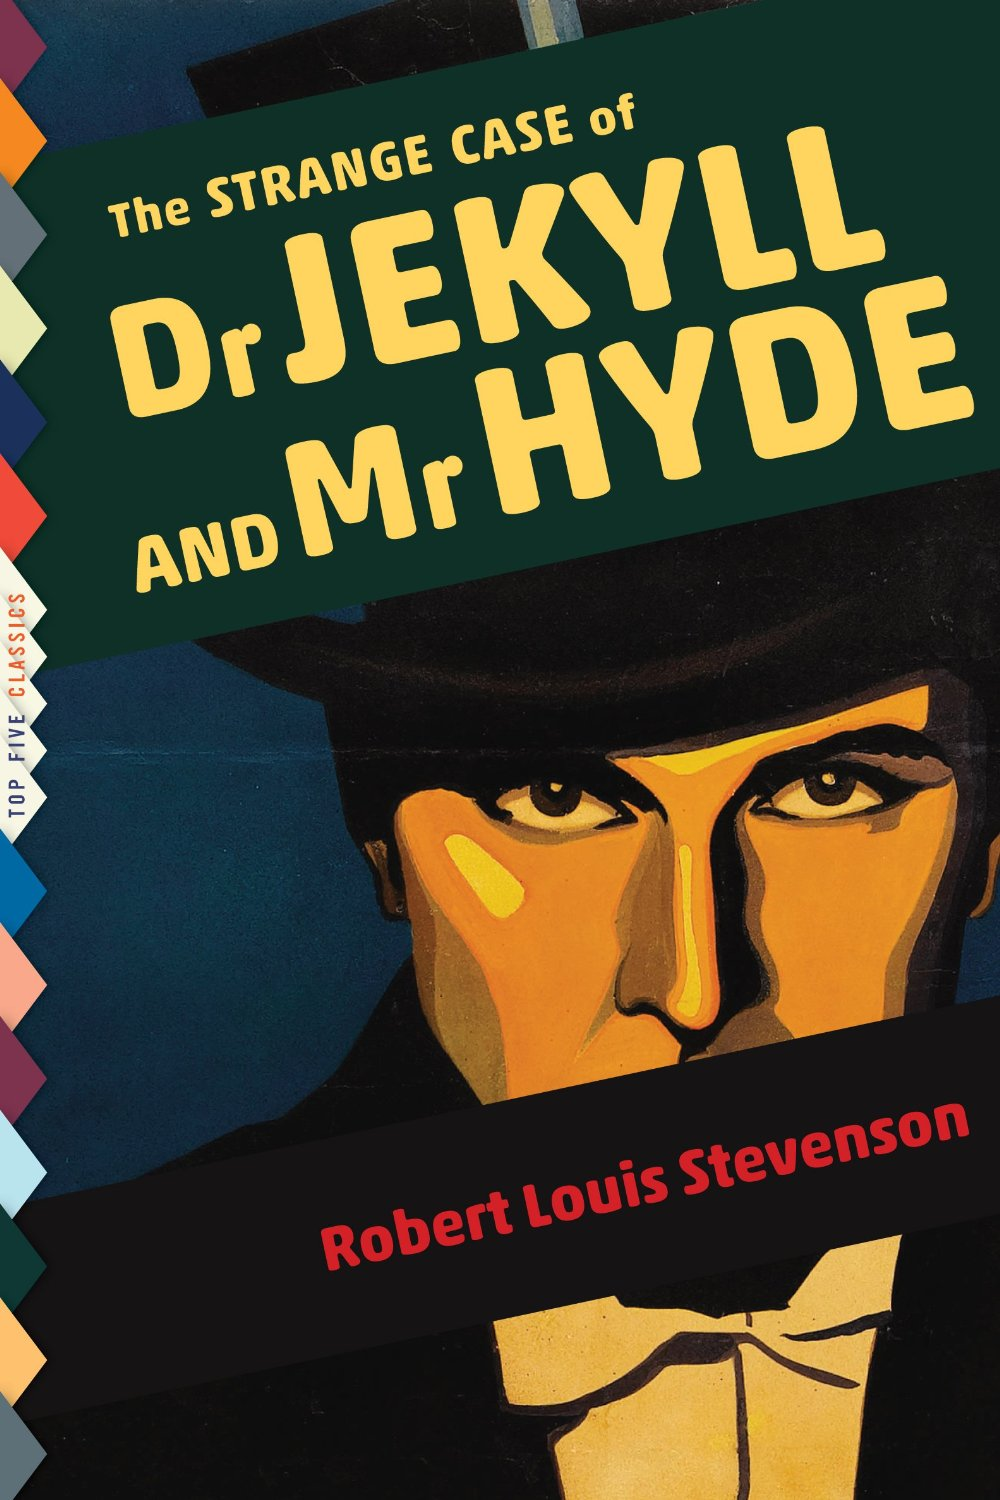 Jekyll and Hyde - Story Snug